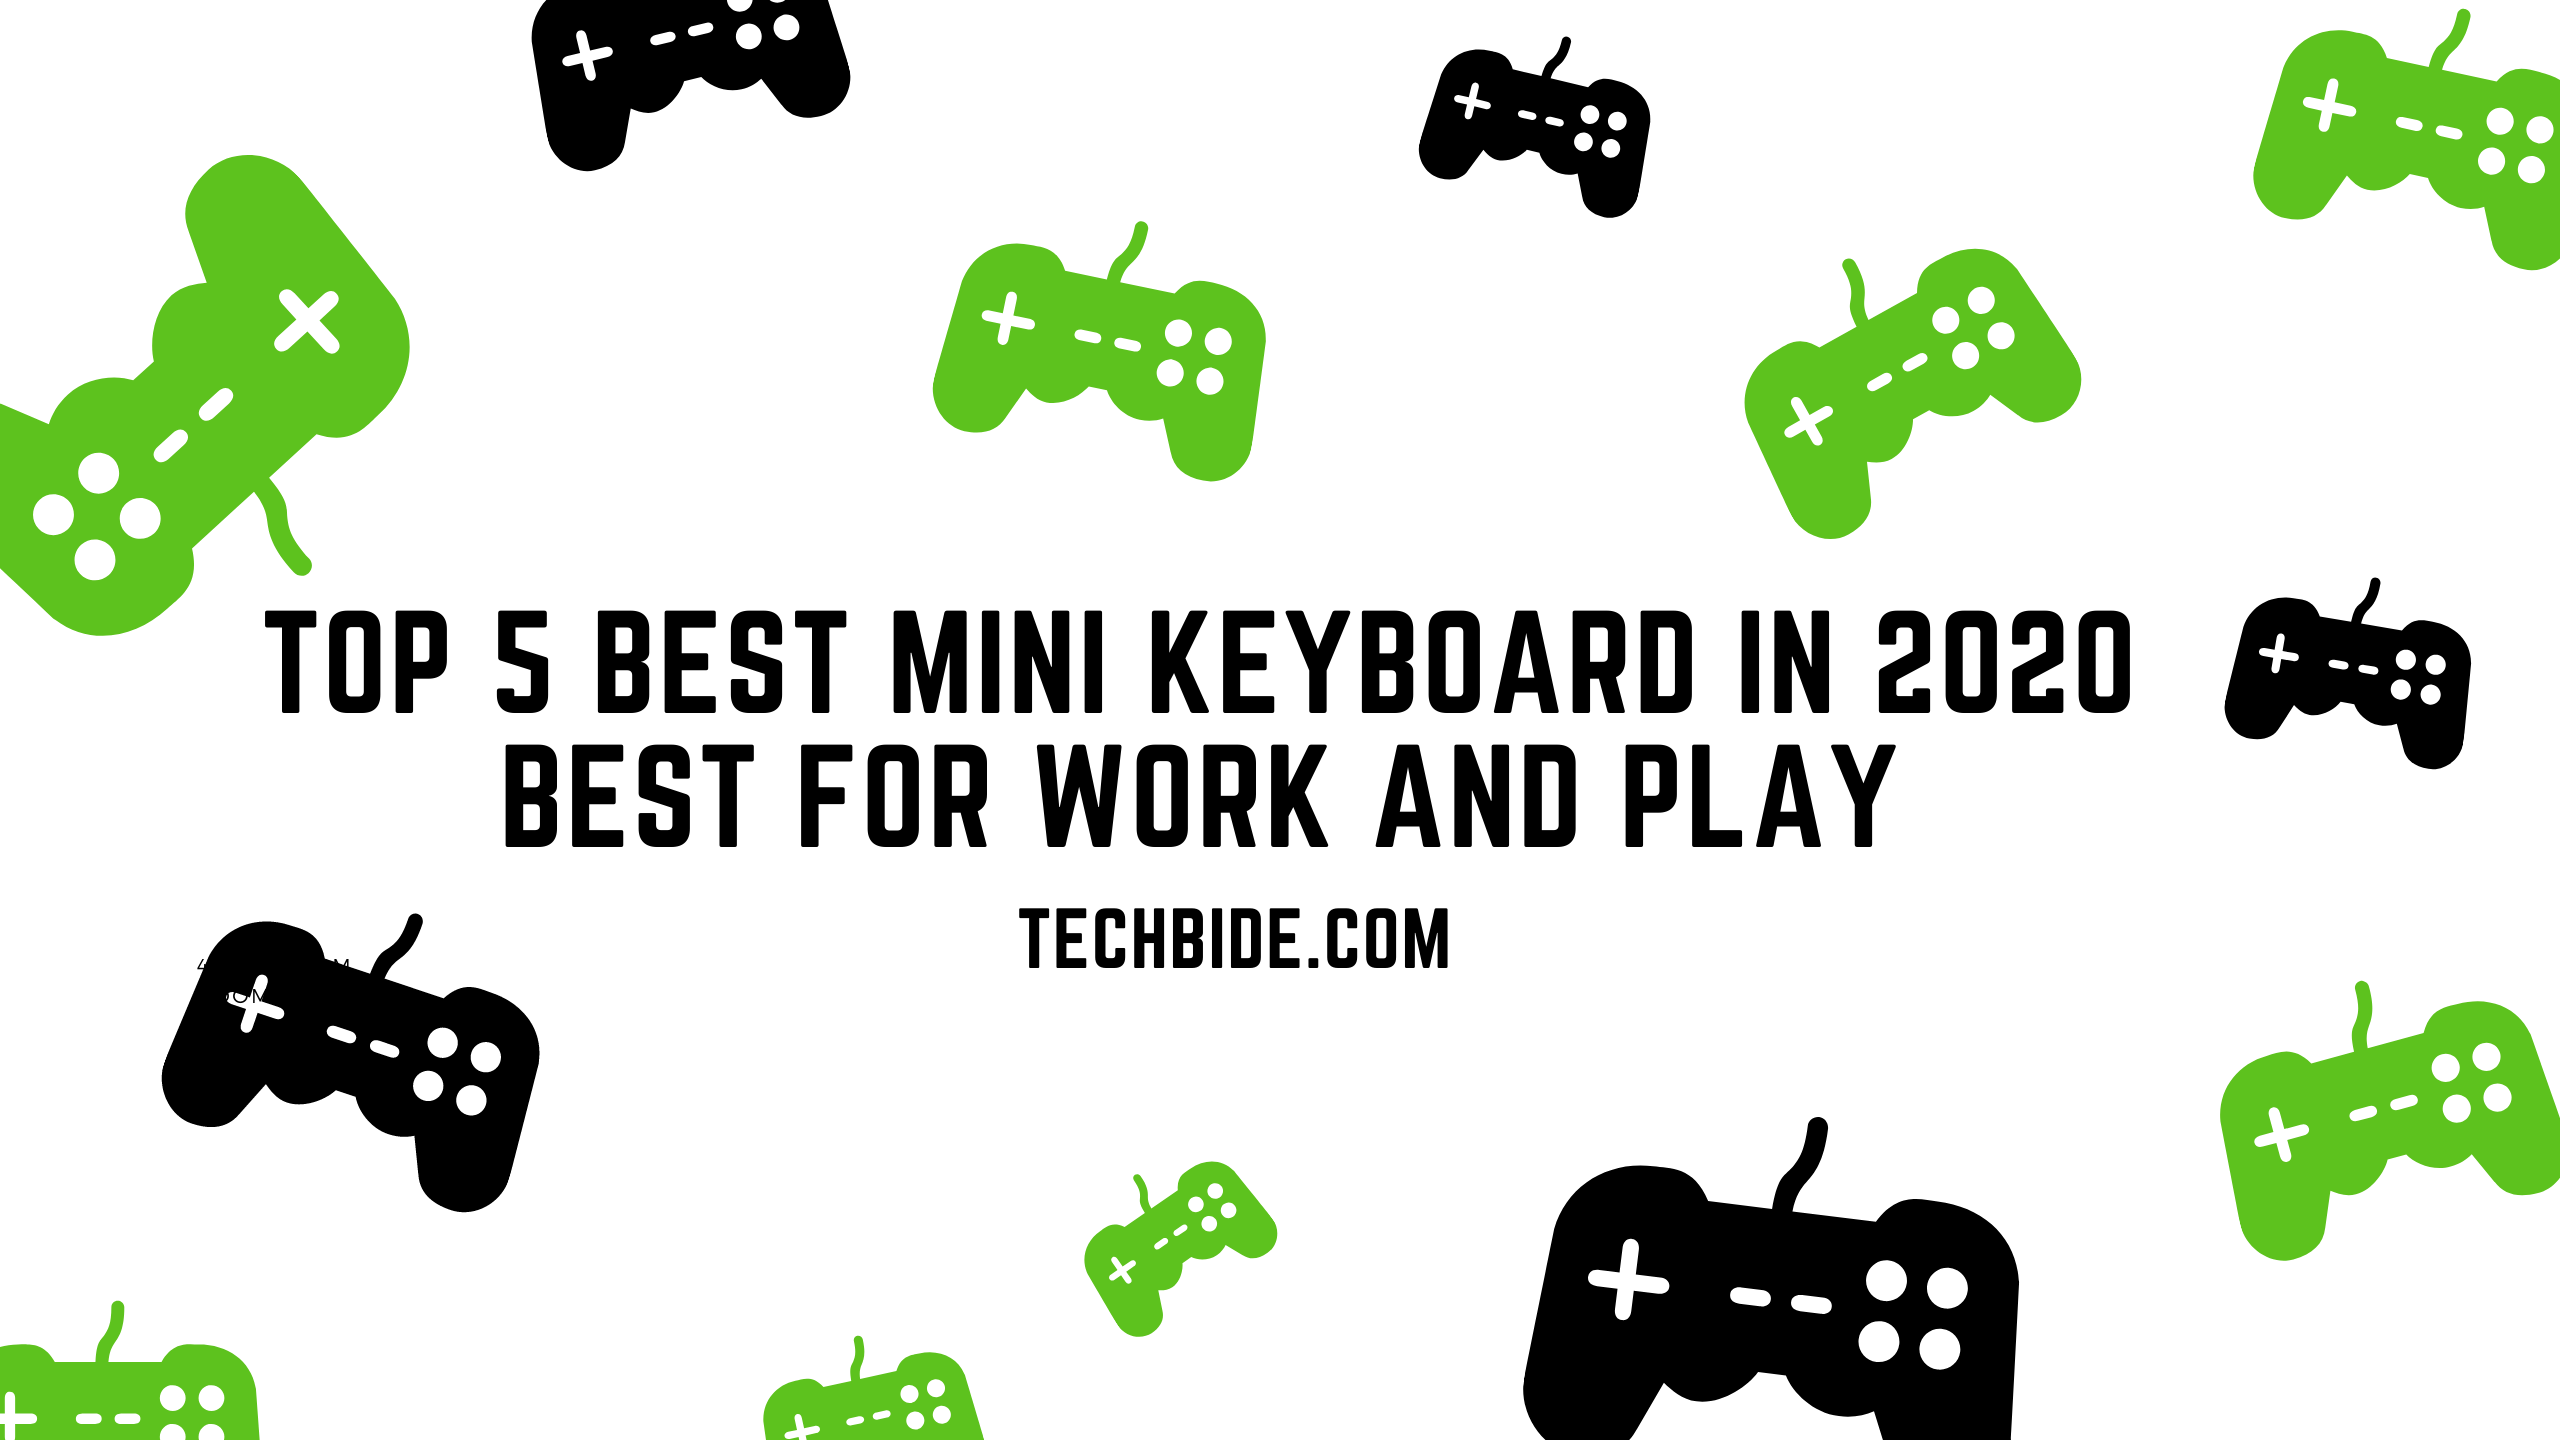 Top 5 Best Mini Keyboard in 2020 - Must-have for Work and Play